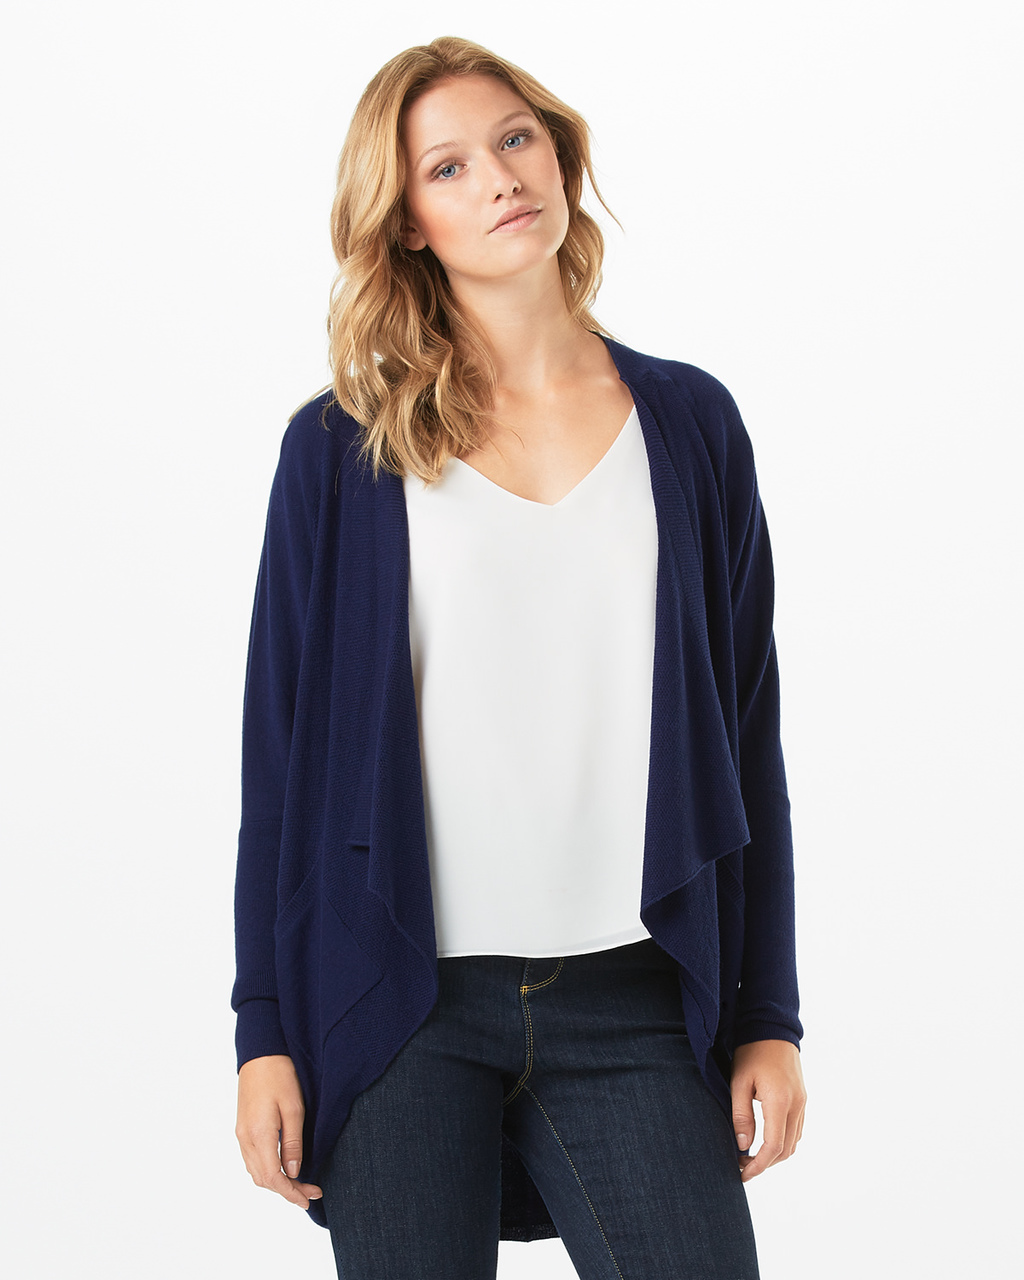 Carys Knitted Cardigan - pattern: plain; neckline: shawl; length: below the bottom; style: open front; predominant colour: navy; occasions: casual; fibres: nylon - mix; fit: loose; sleeve length: long sleeve; sleeve style: standard; texture group: knits/crochet; pattern type: fabric; wardrobe: basic; season: a/w 2016